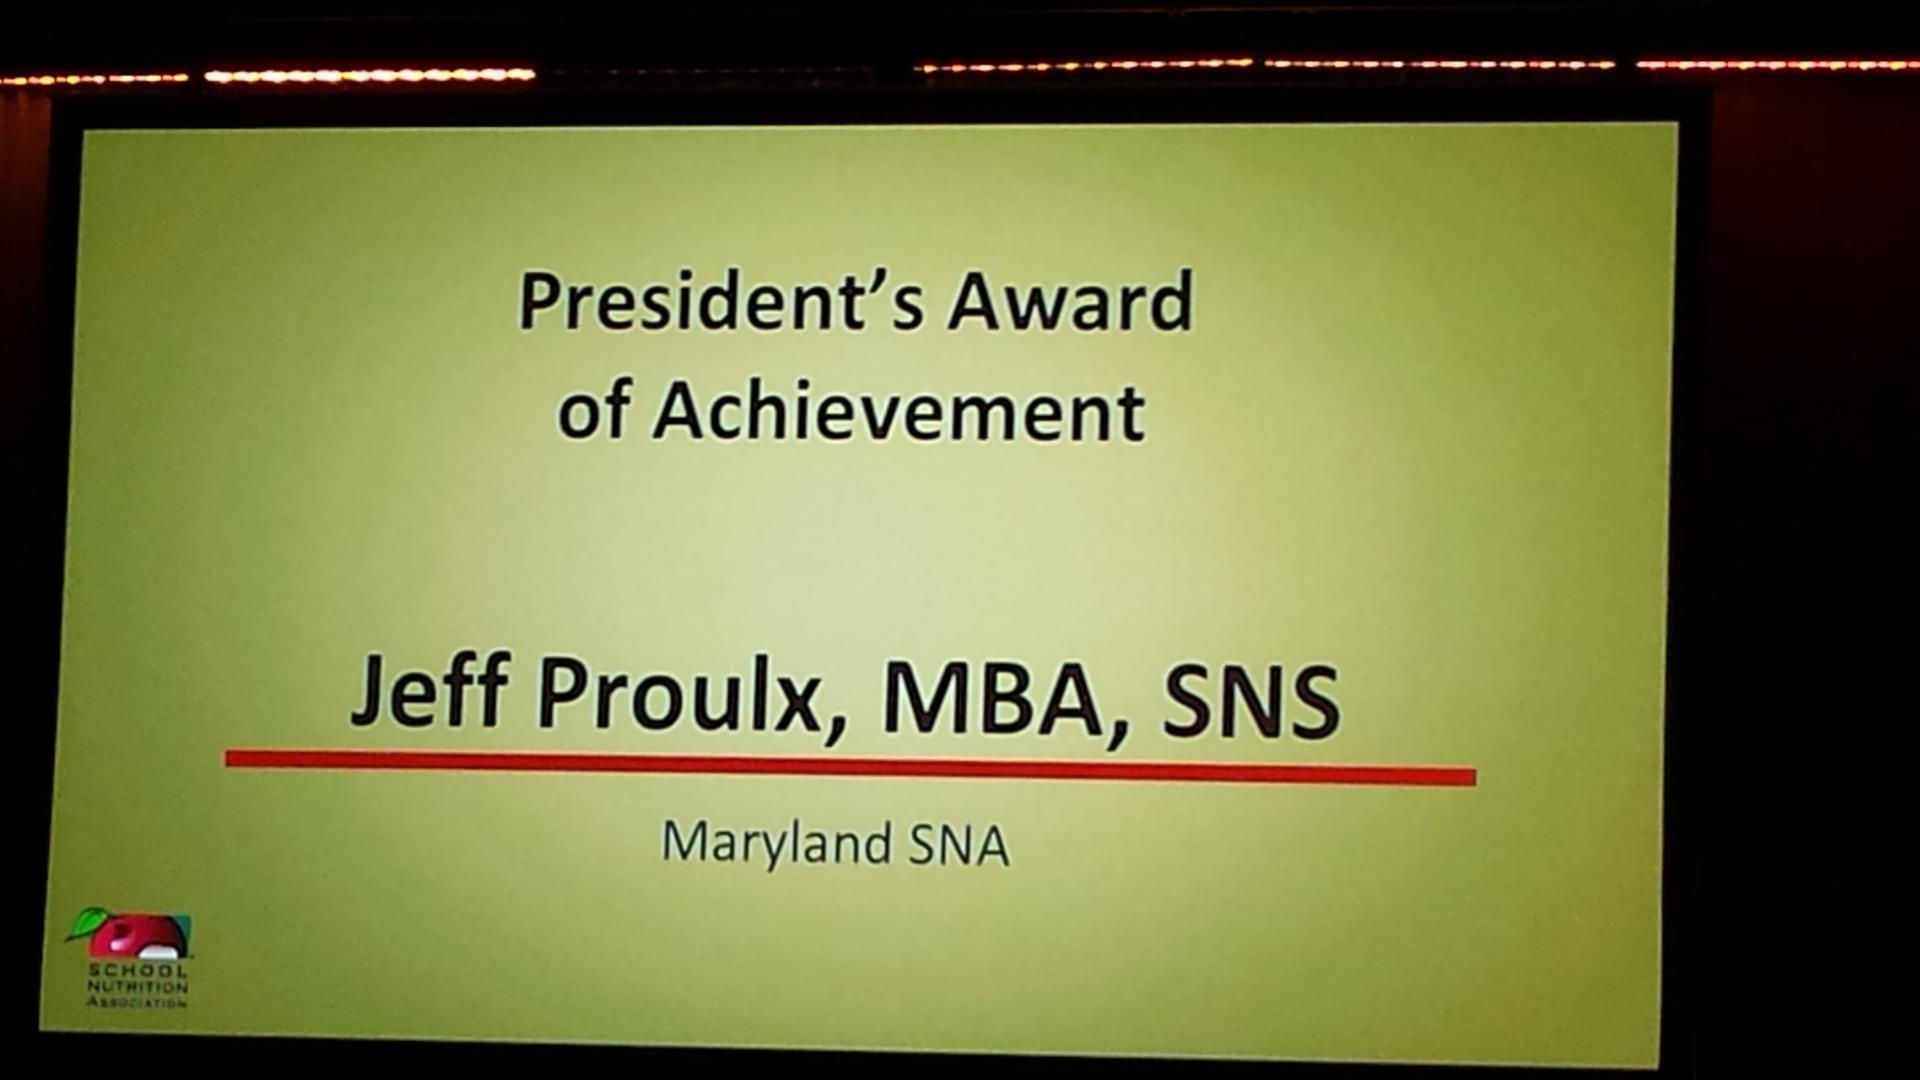 President's Award of Achievement Jeff Proulx, MBA, SNS Maryland SNA